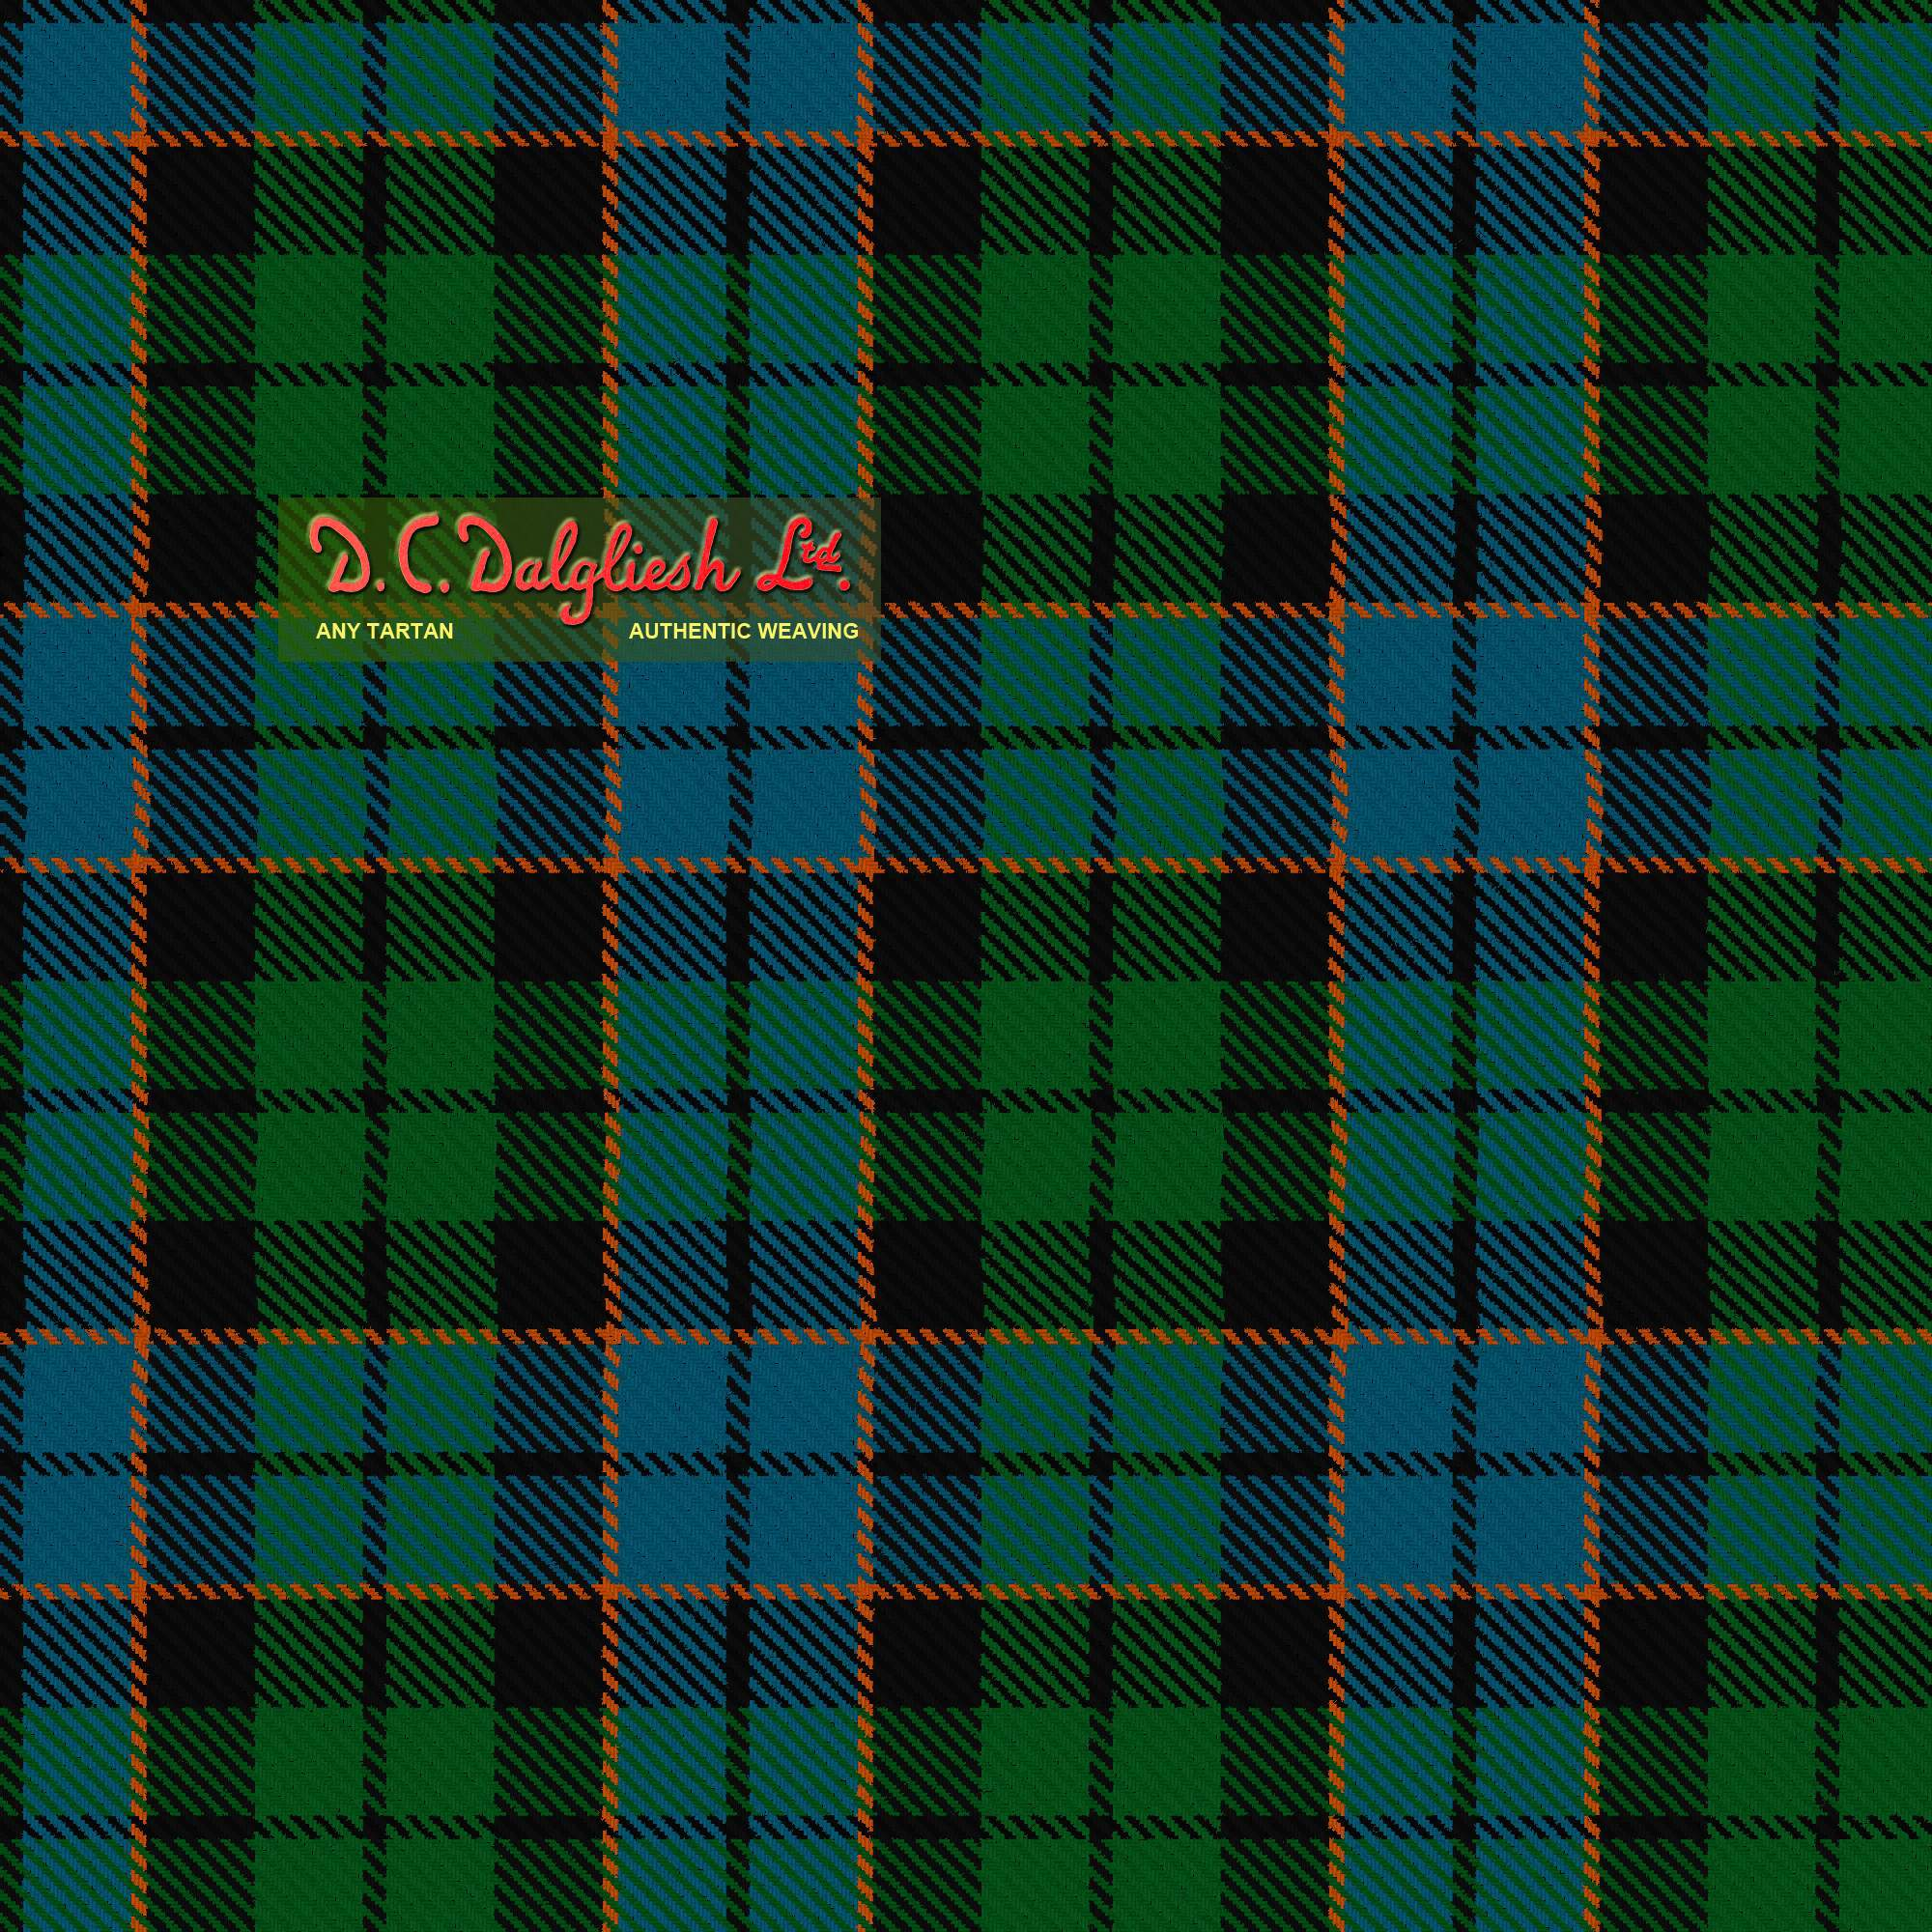 Gallamore Fabric By Dc Dalgliesh Hand Crafted Tartans